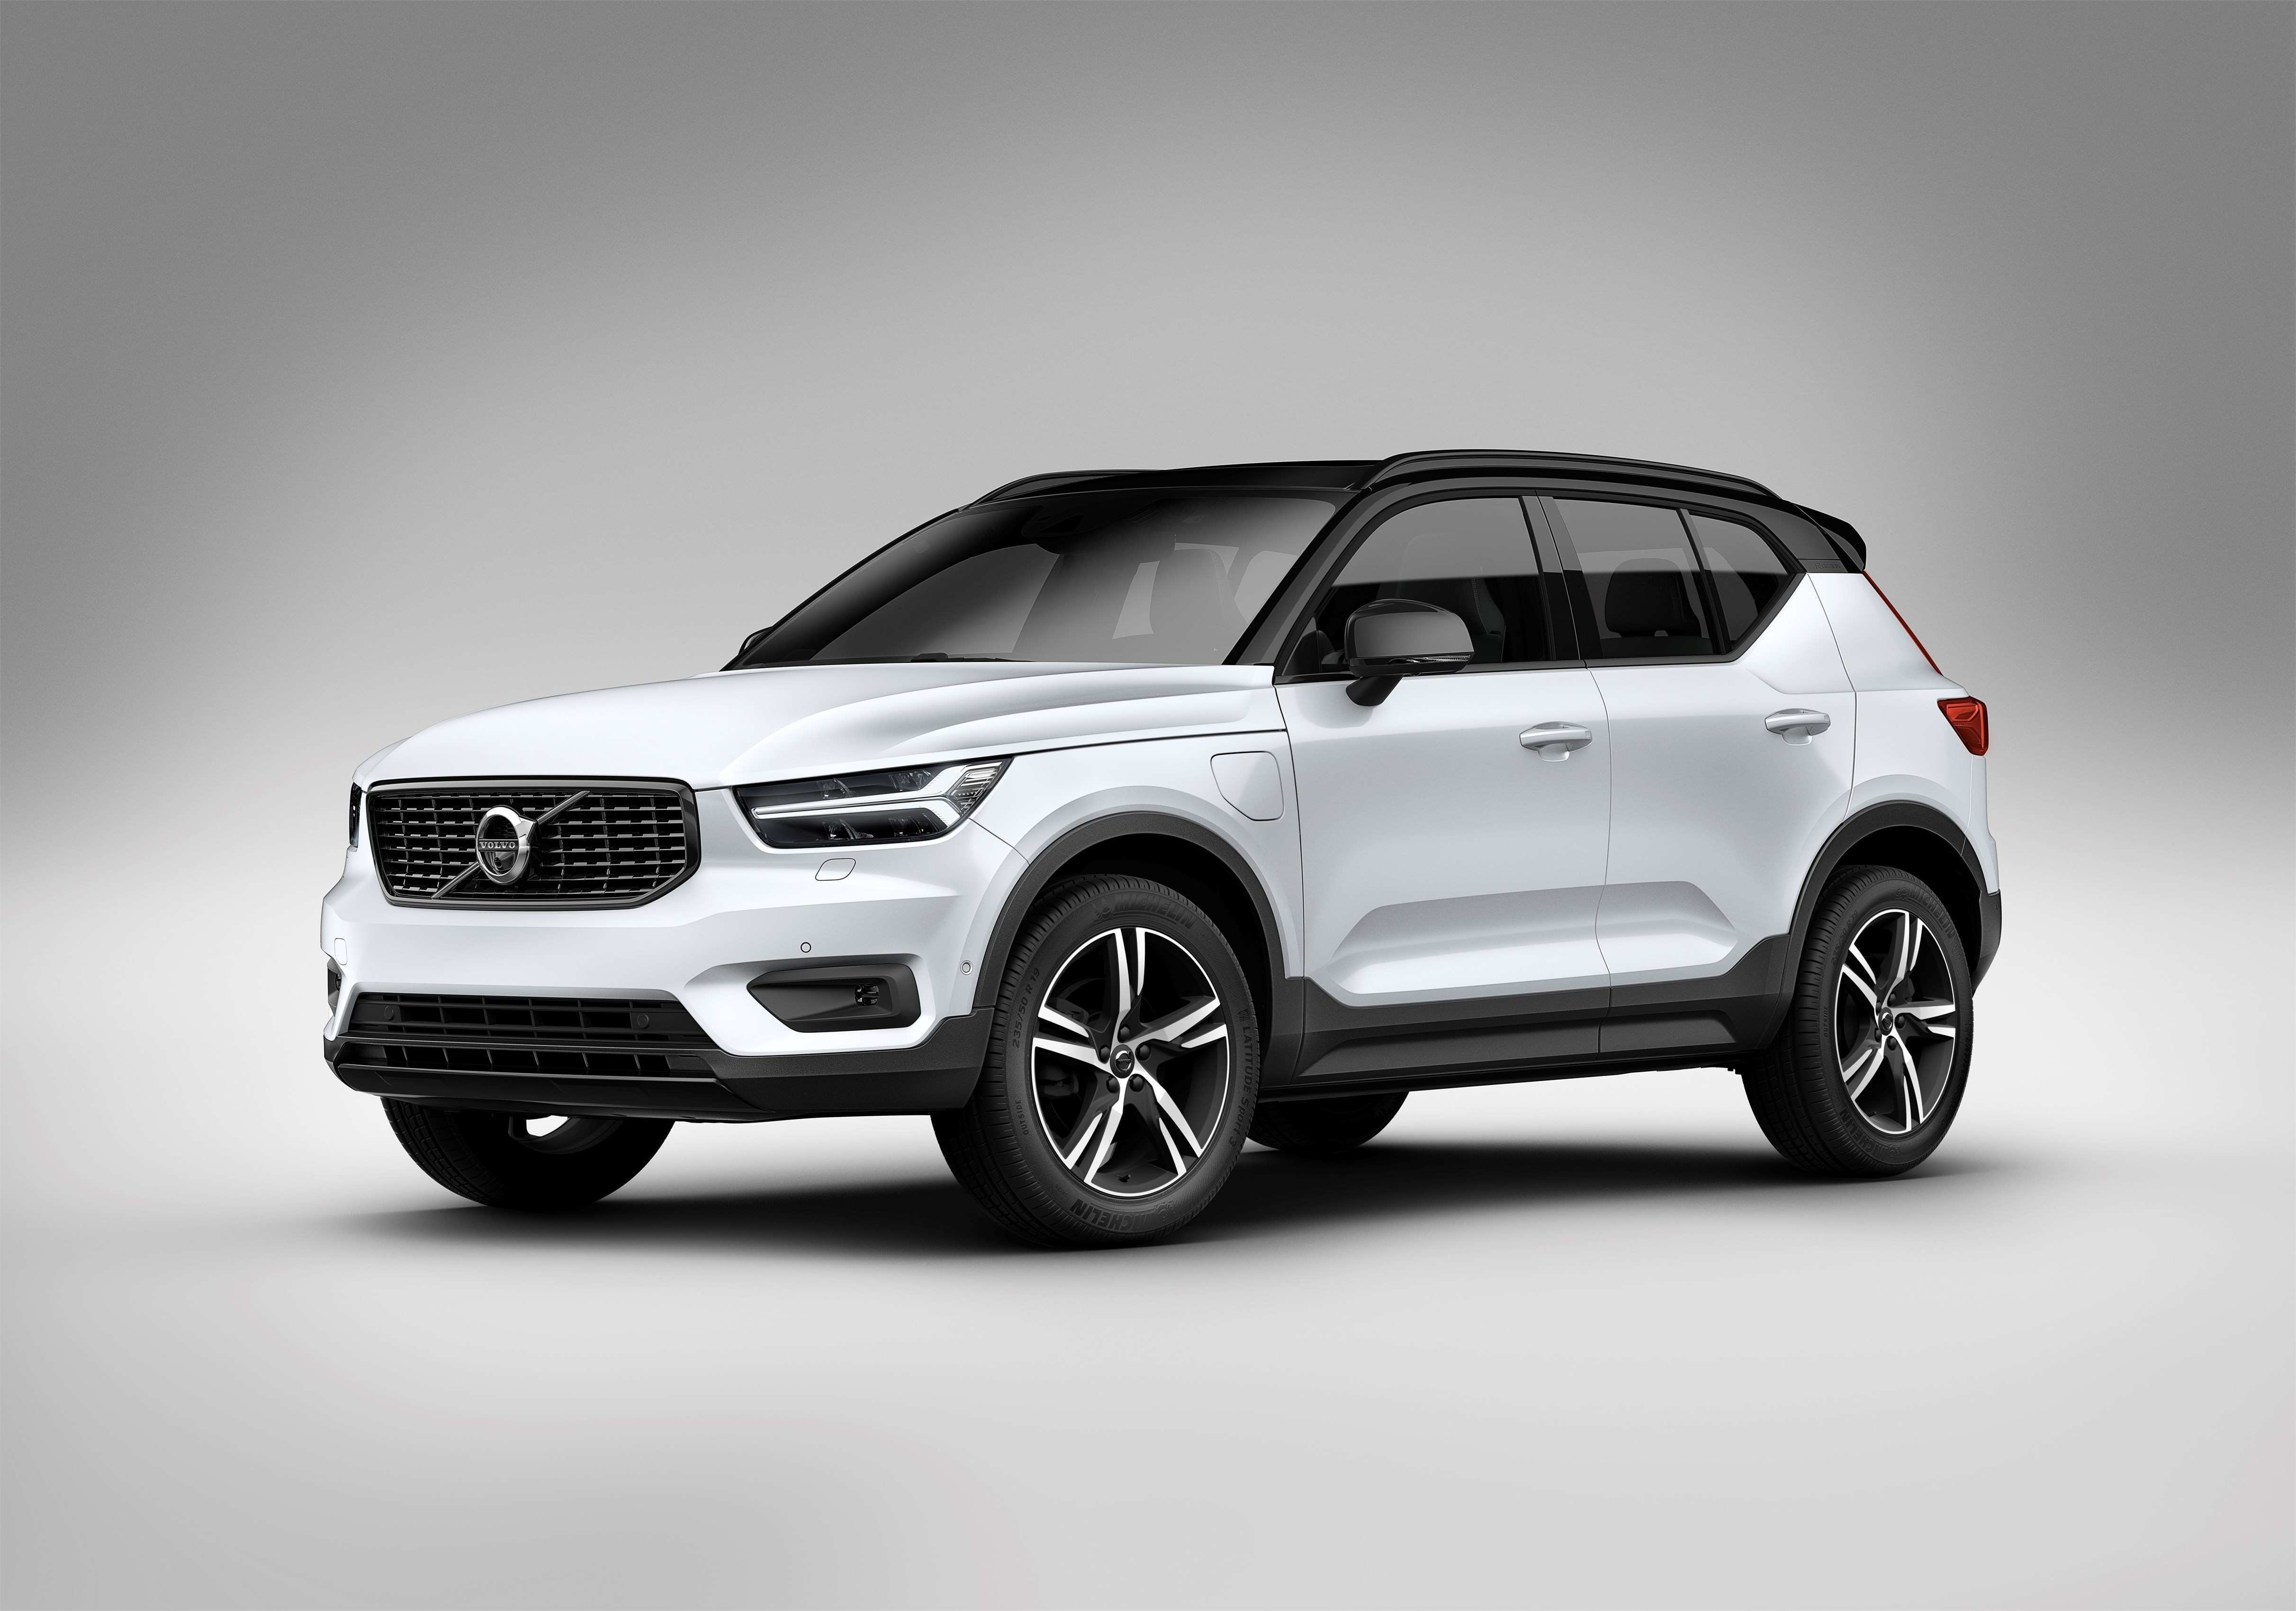 75 Concept of Volvo 2020 All Electric Redesign and Concept with Volvo 2020 All Electric